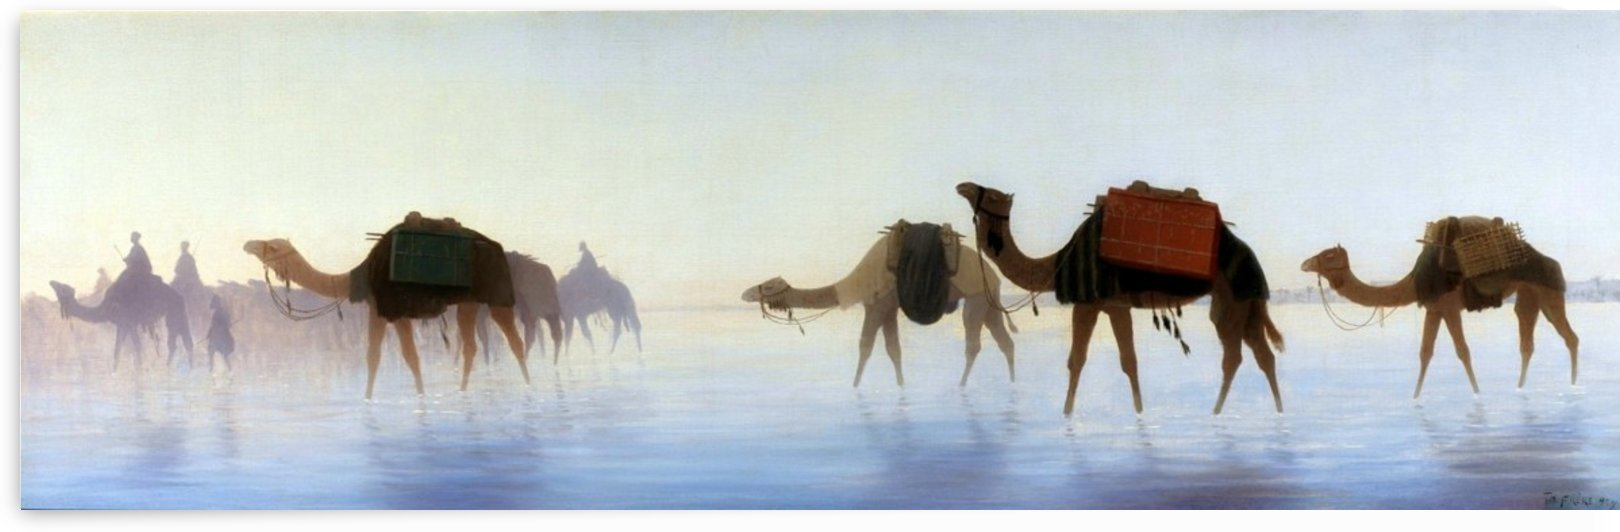 Camels crossing water by Charles-Theodore Frere